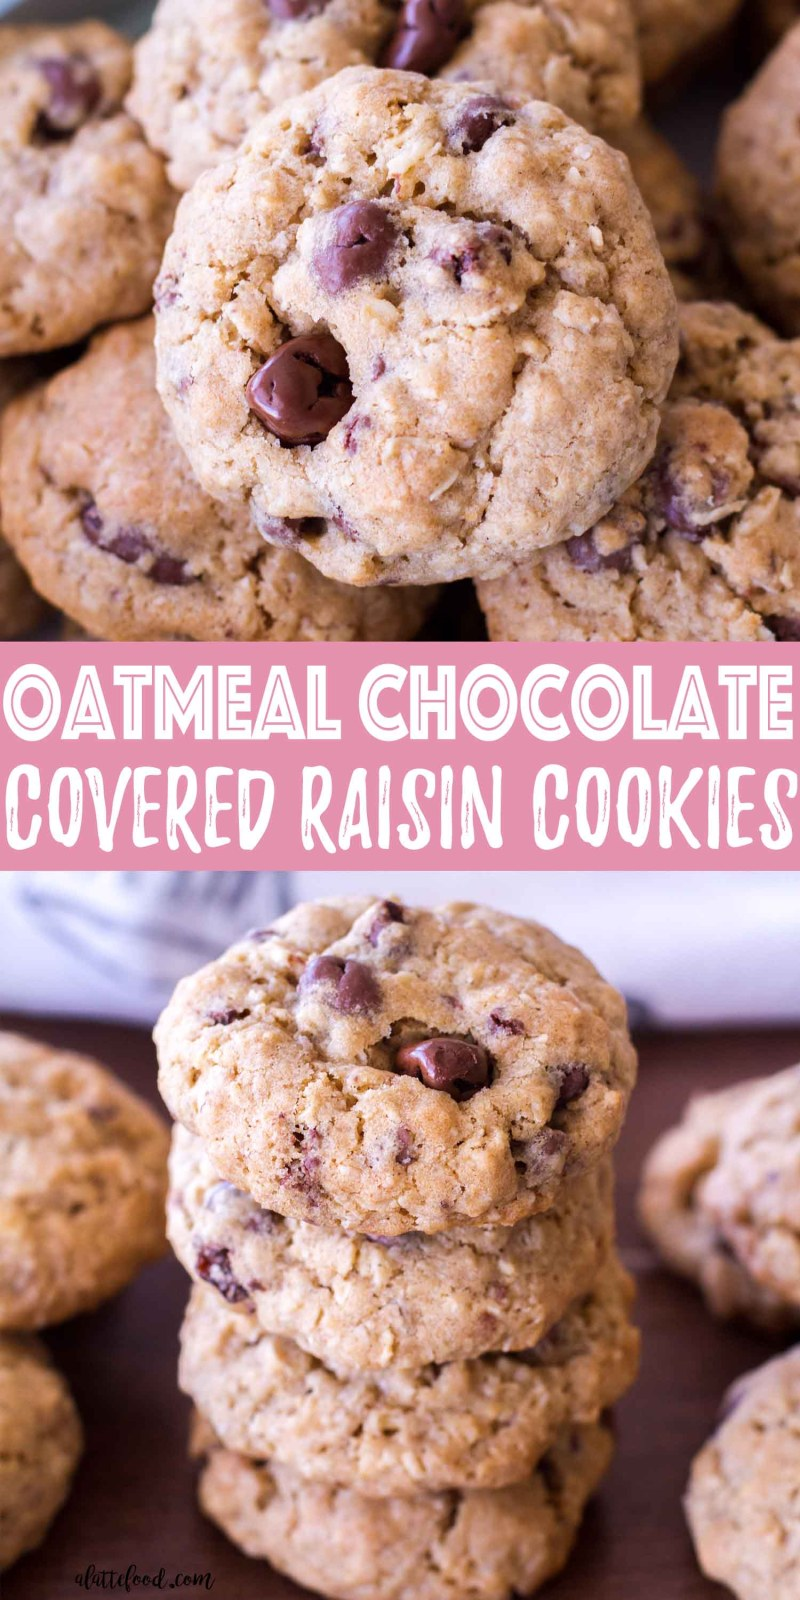 These oatmeal chocolate covered raisin cookies are a cross between the best oatmeal chocolate chip cookies and homemade oatmeal raisin cookies! If you are a fan of both oatmeal cookie recipes, you are sure to love this spin on a classic cookie recipe!